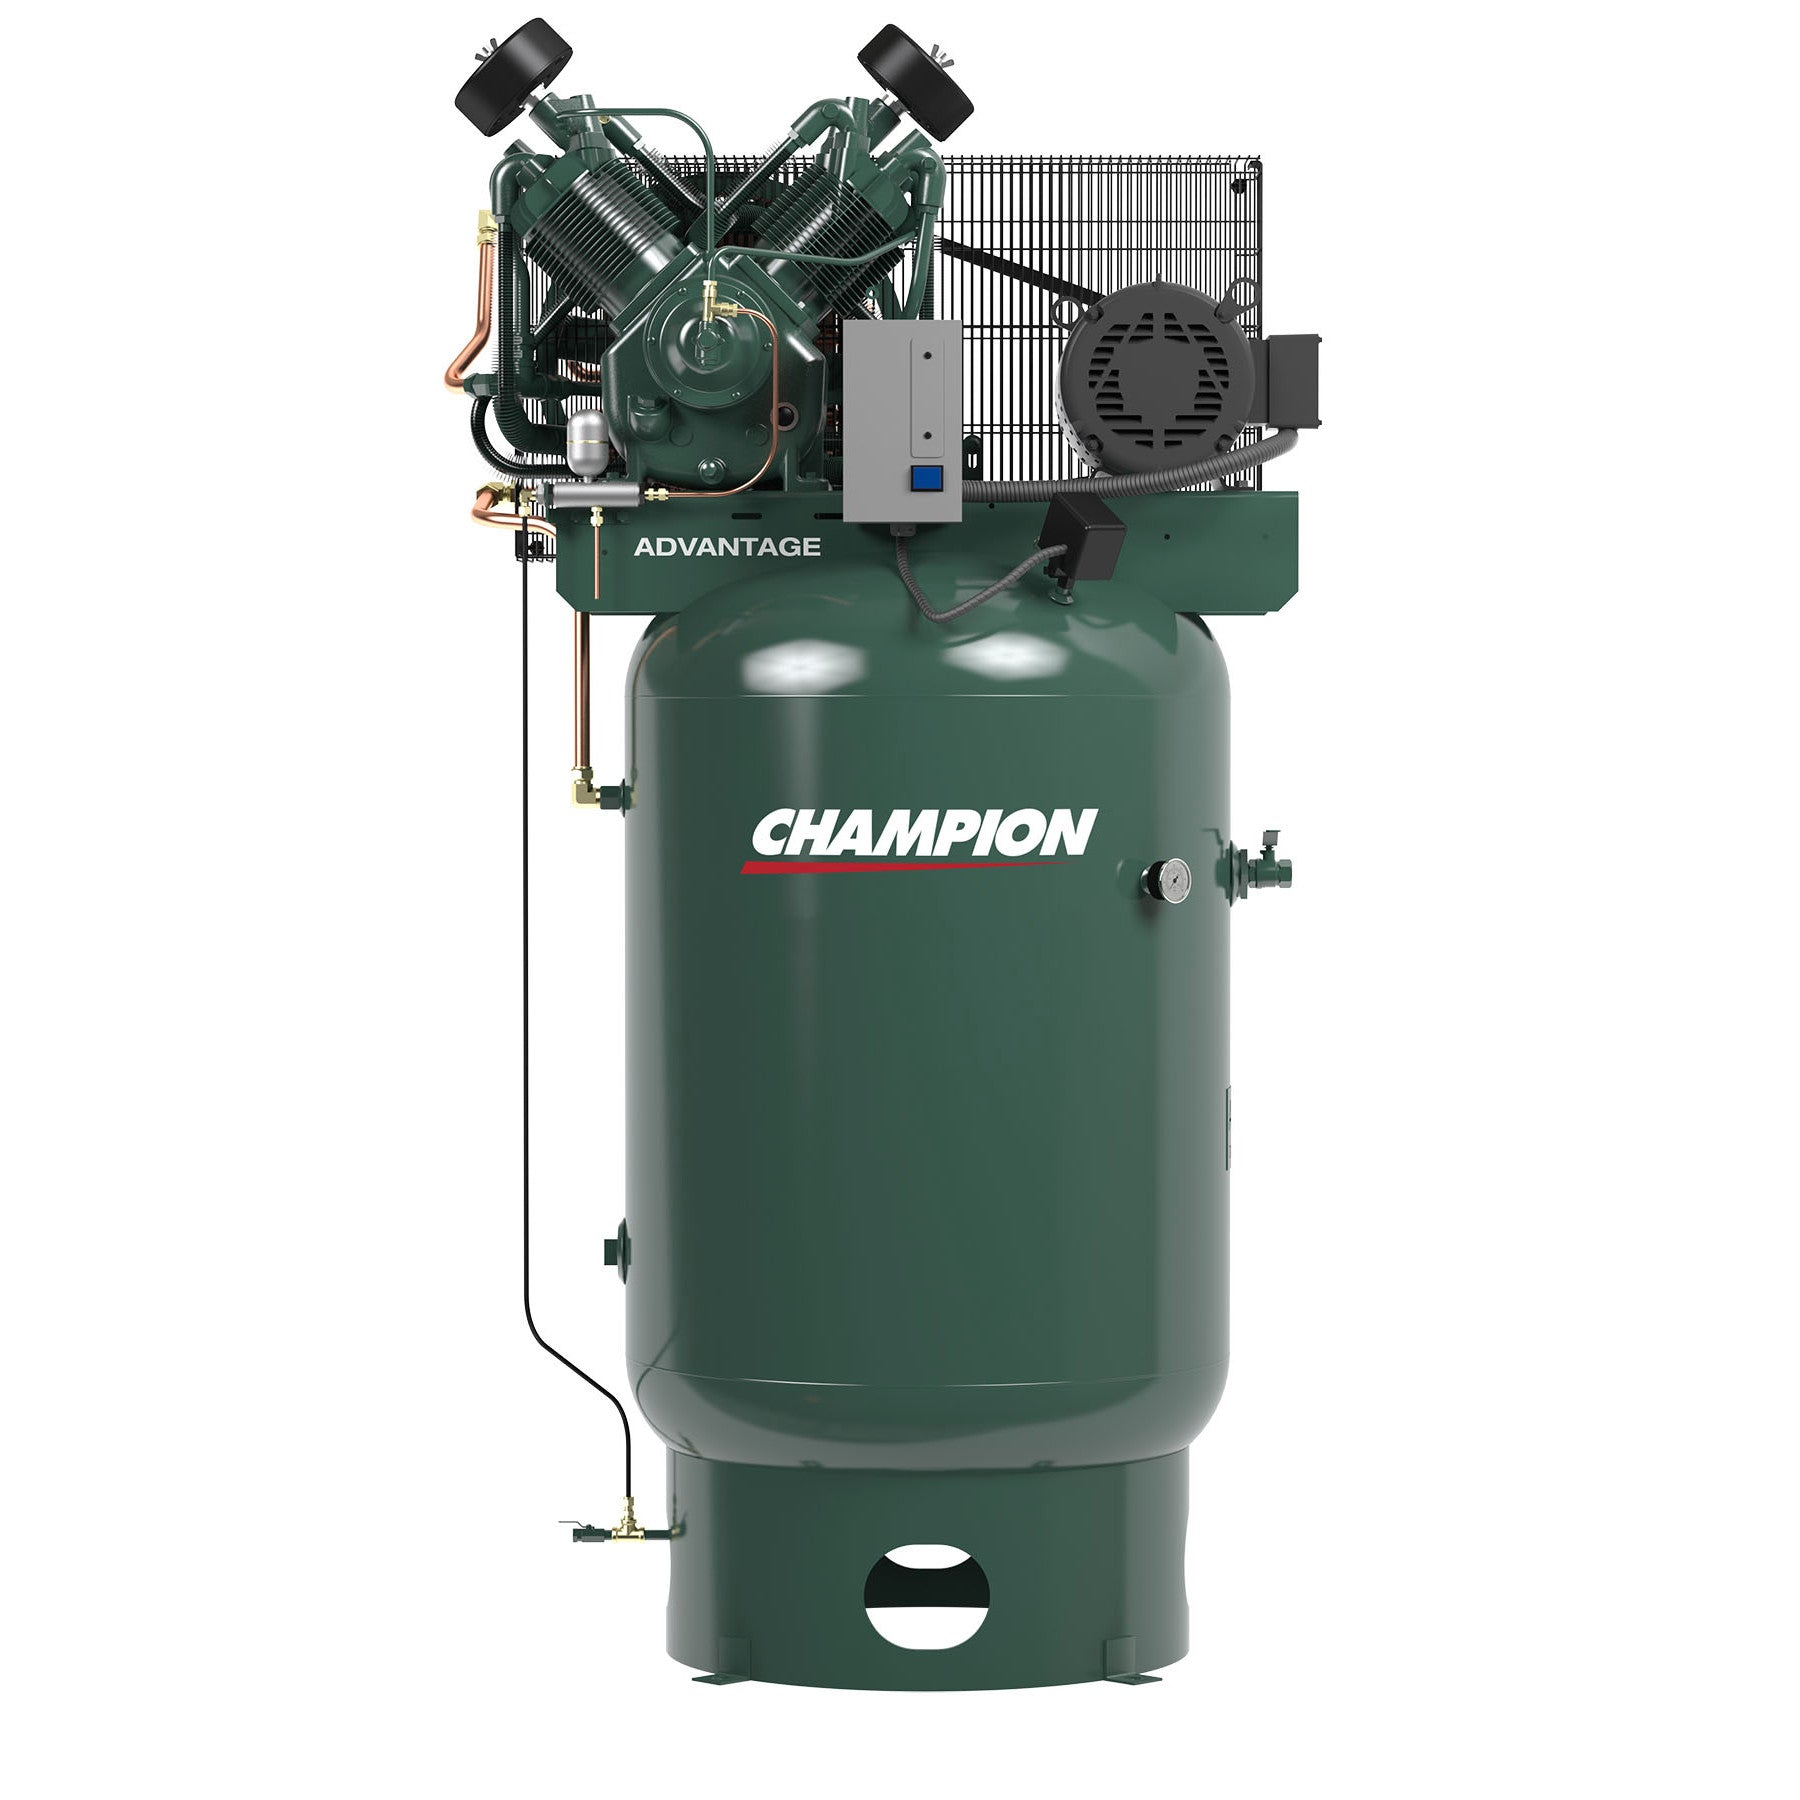 Champion VR10-12 Air Compressor Fully Equipped (230V, 3PH, 10HP, 120GL)